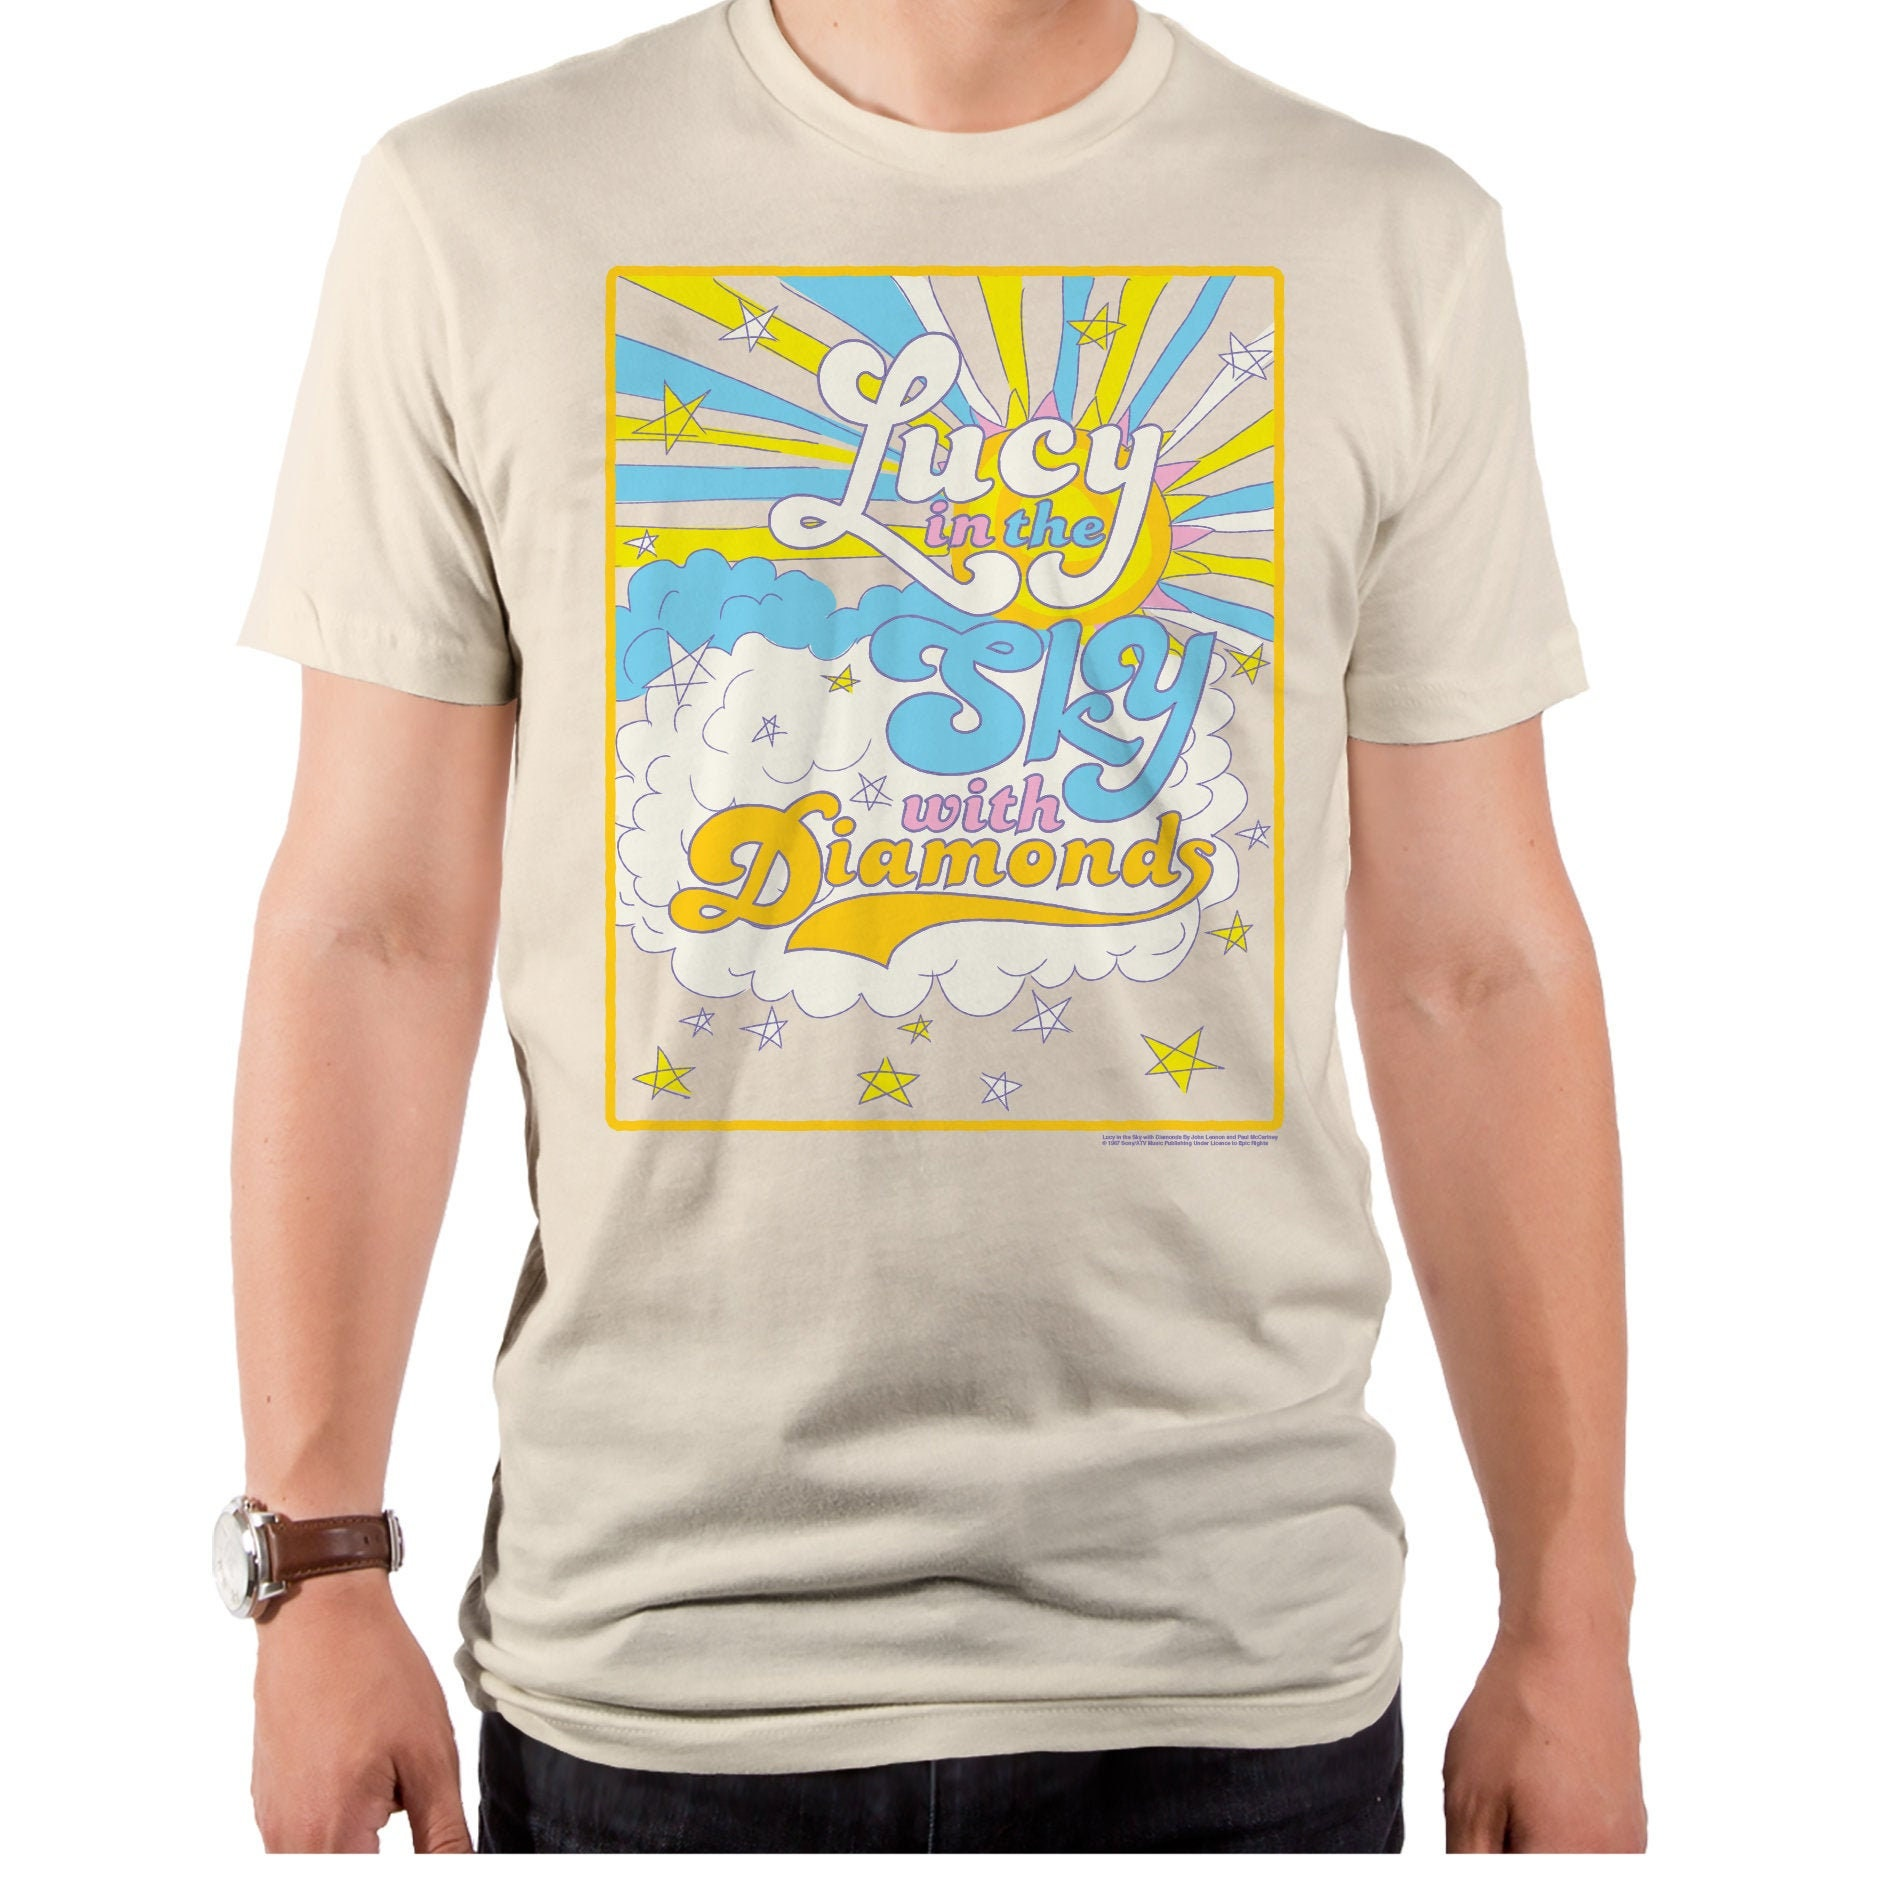 1960s – 70s Men's Ties | Skinny Ties, Slim Ties Lucy in The Sky Mens T-Shirt  Llm0004-501Ofw Lennon  Mccartney, Music, Lyrics, English Musicians, 1960S, Compositions, British Invasion $27.95 AT vintagedancer.com